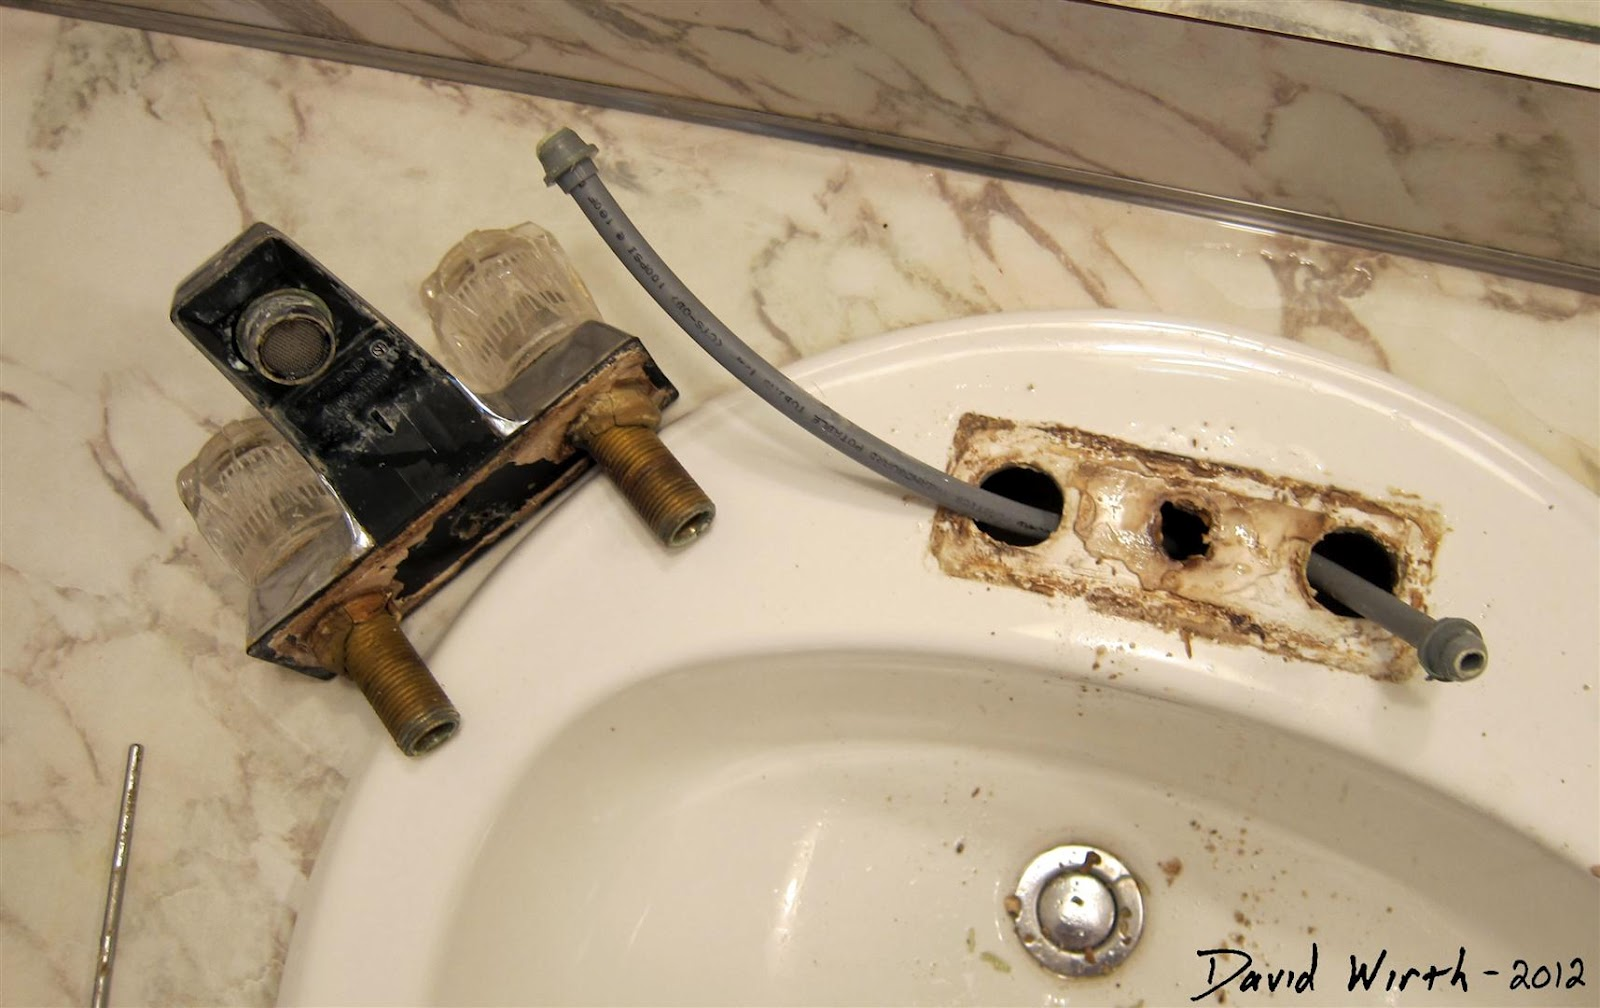 hook up bathroom sink drain